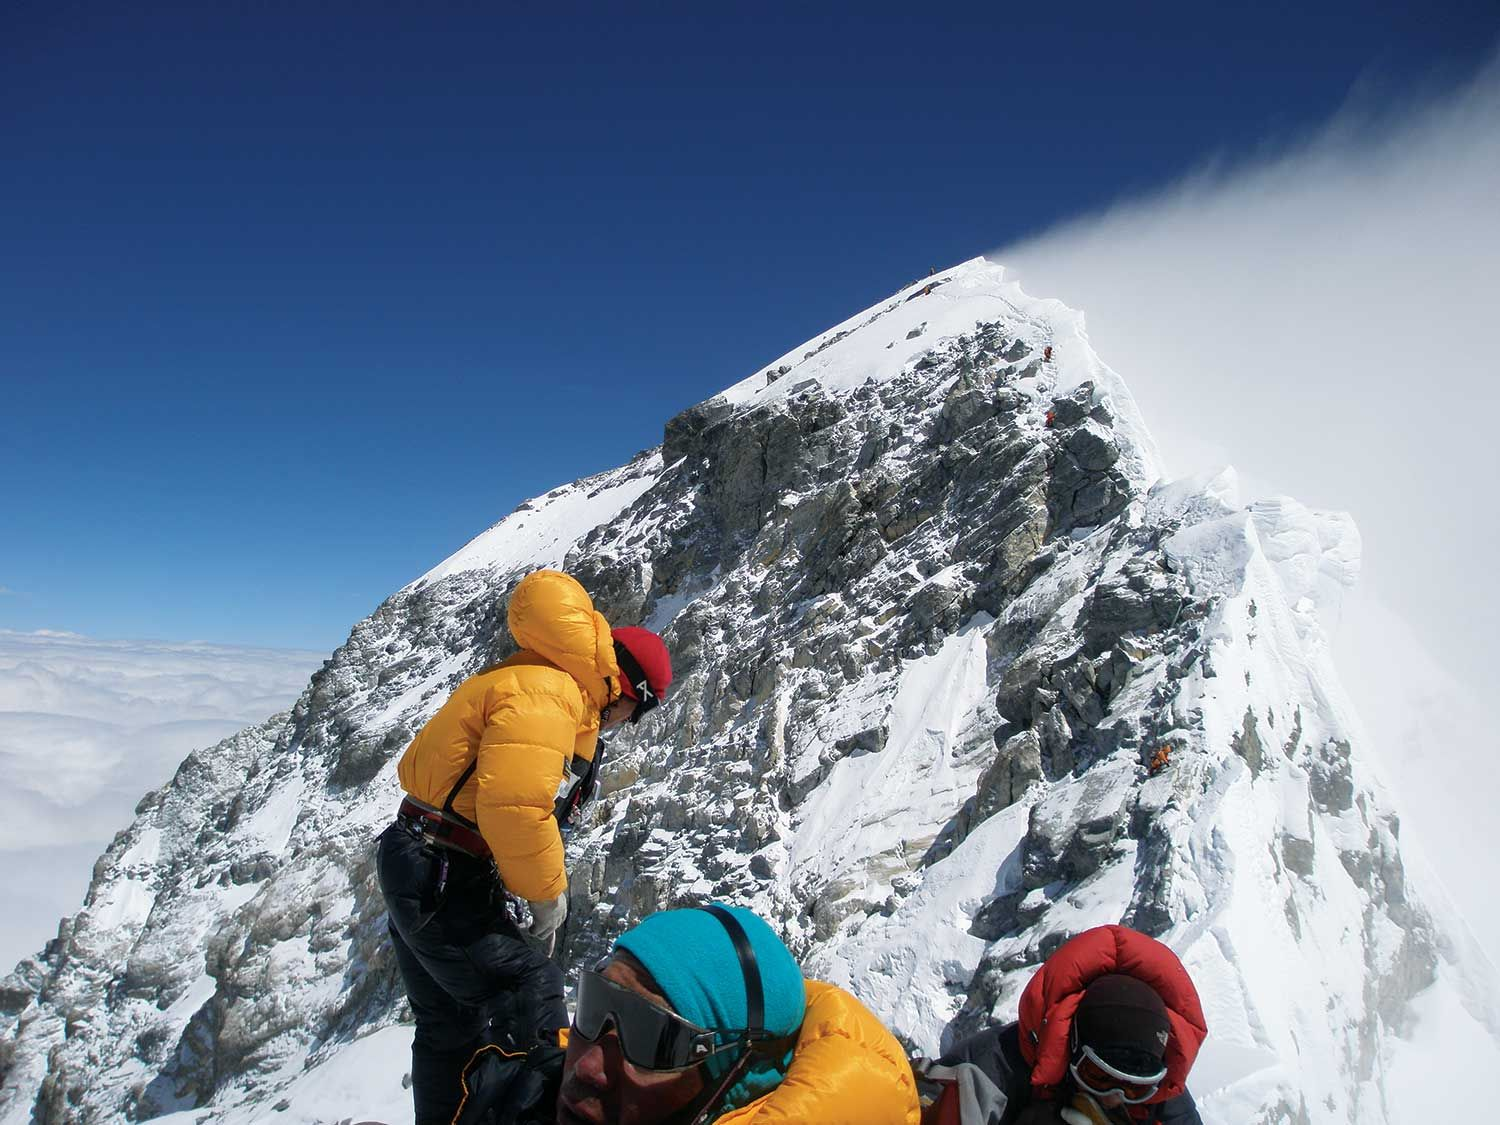 mountain climbing expeditions challenged - HD1500×1125